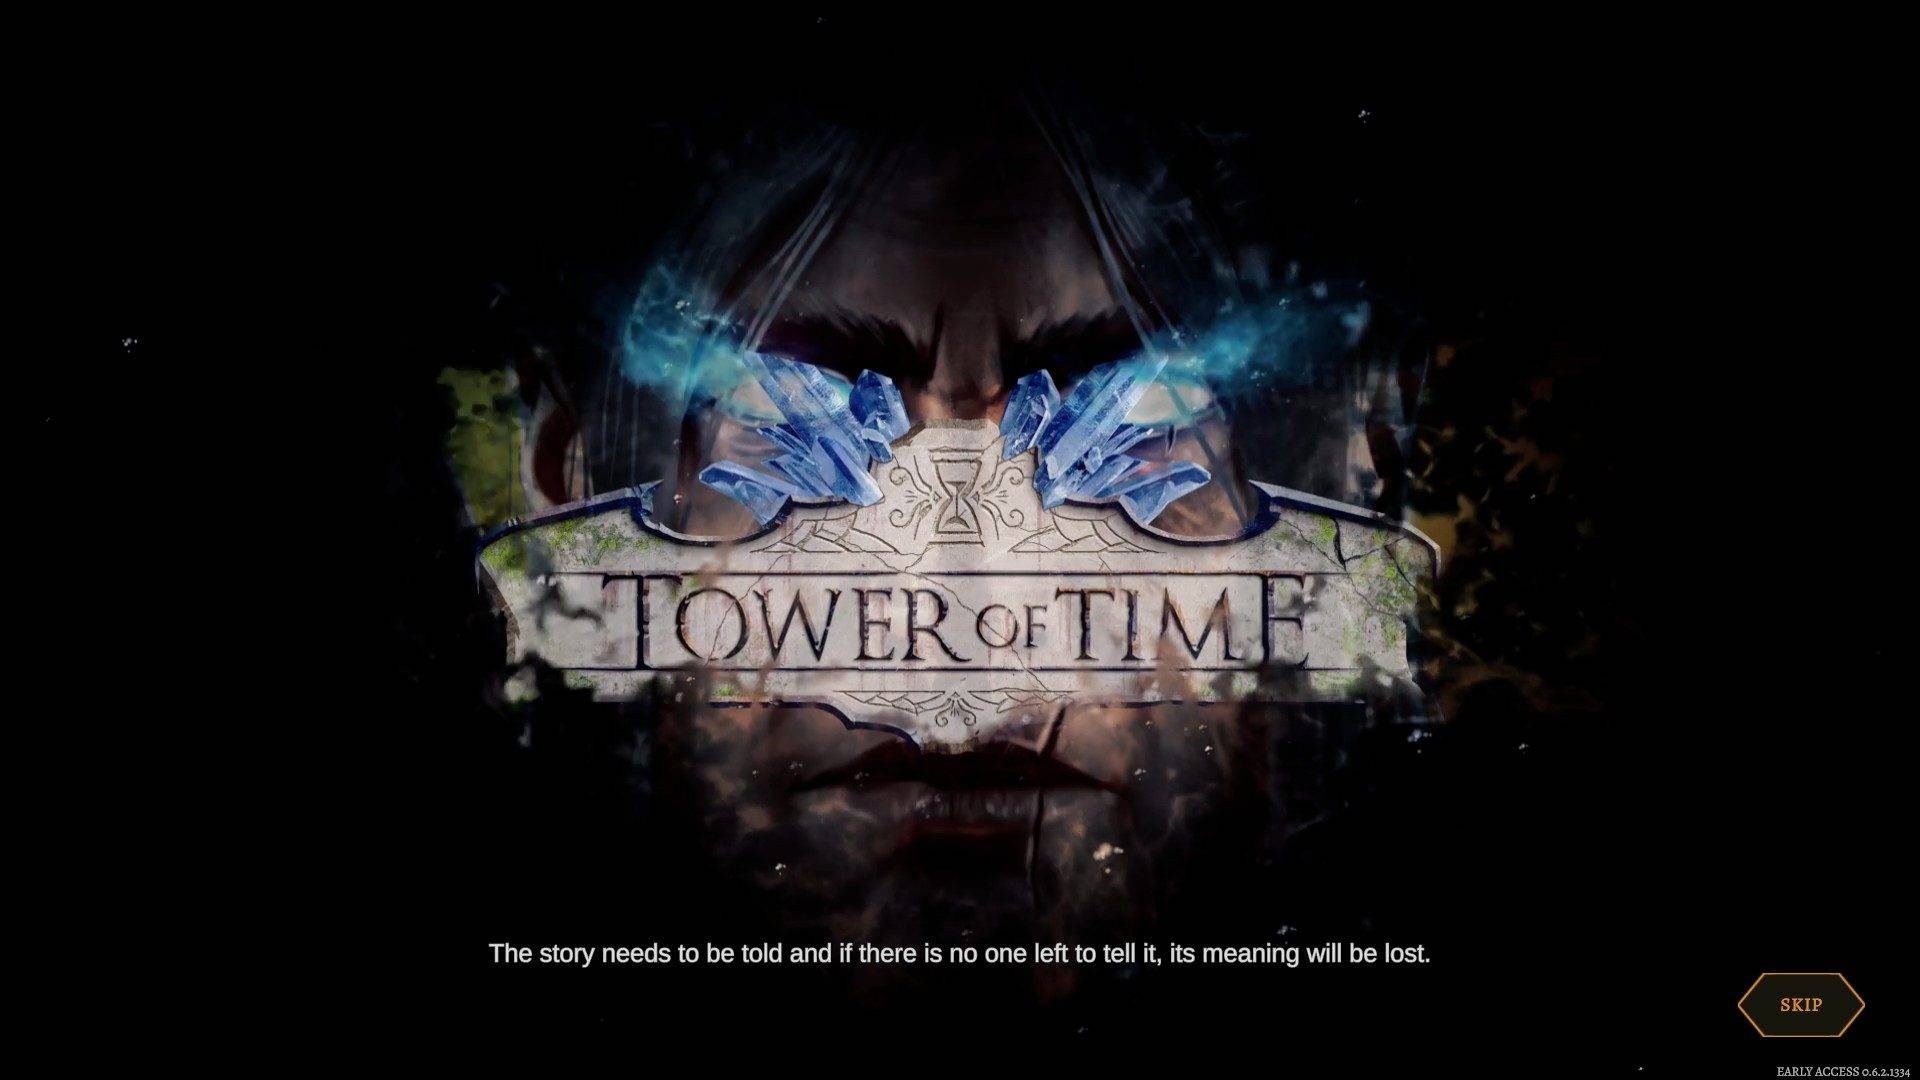 Preview: Tower of Time